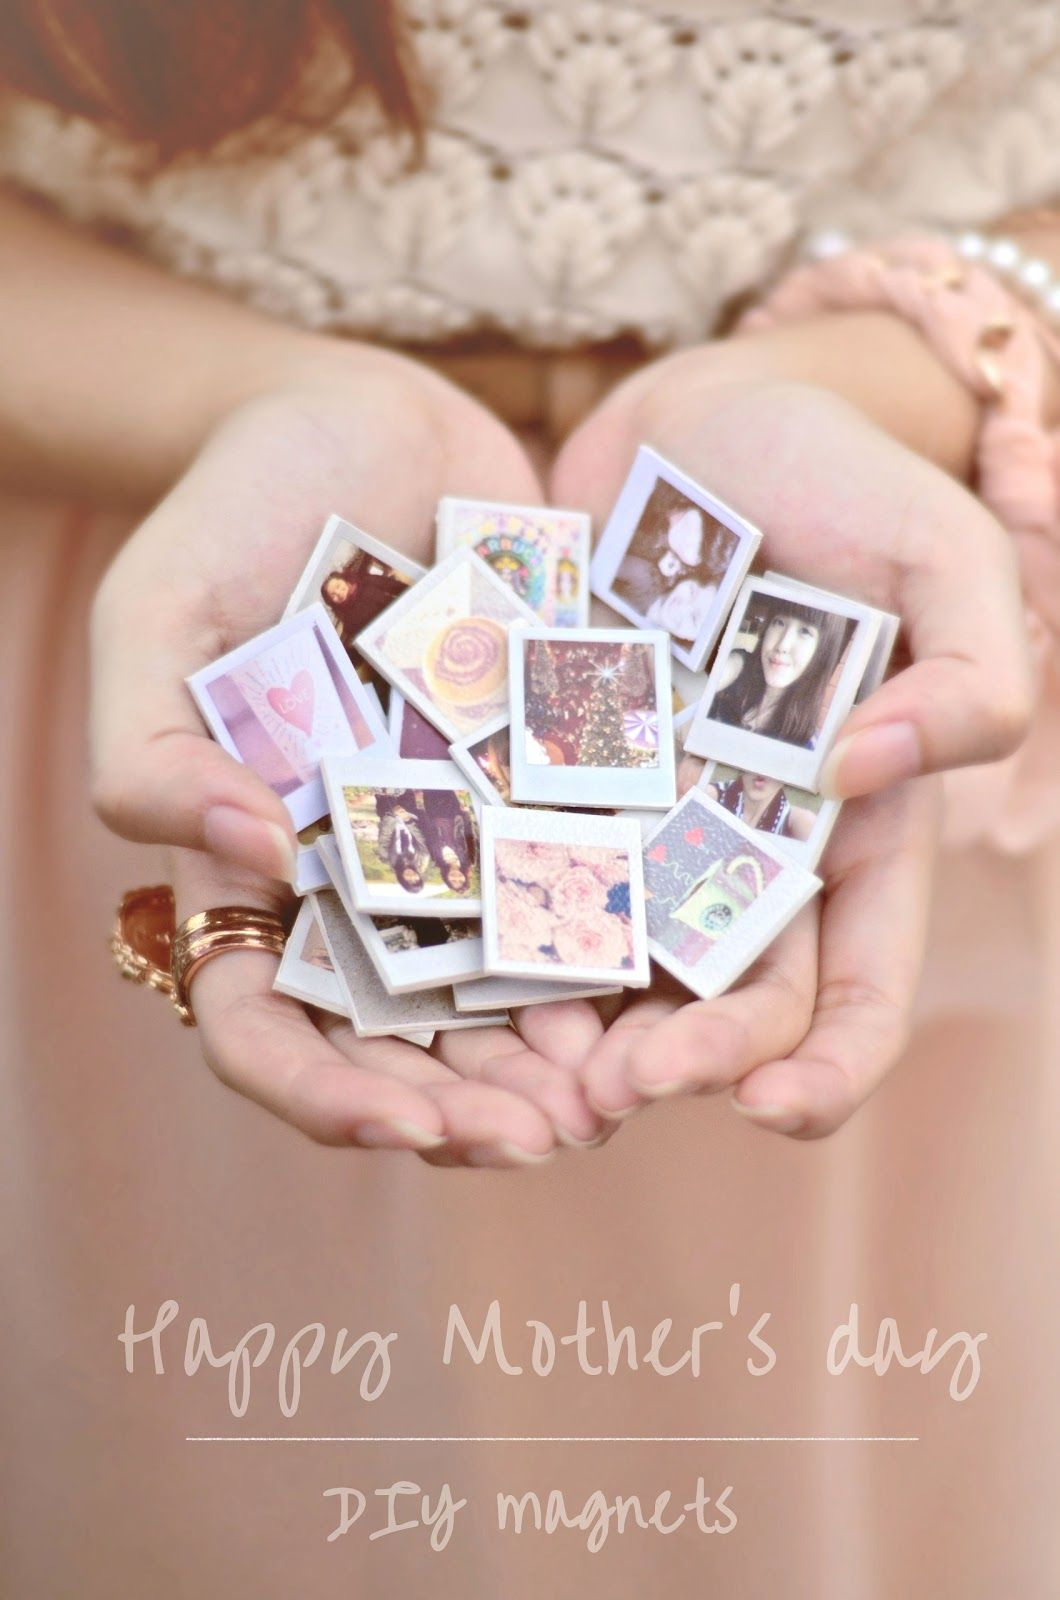 Top 10 handmade gifts using photos pinterest anniversary gifts top 10 handmade gifts using photos these gifts ideas are perfect for christmas gifts birthday presents mothers day gifts and anniversary gifts negle Images